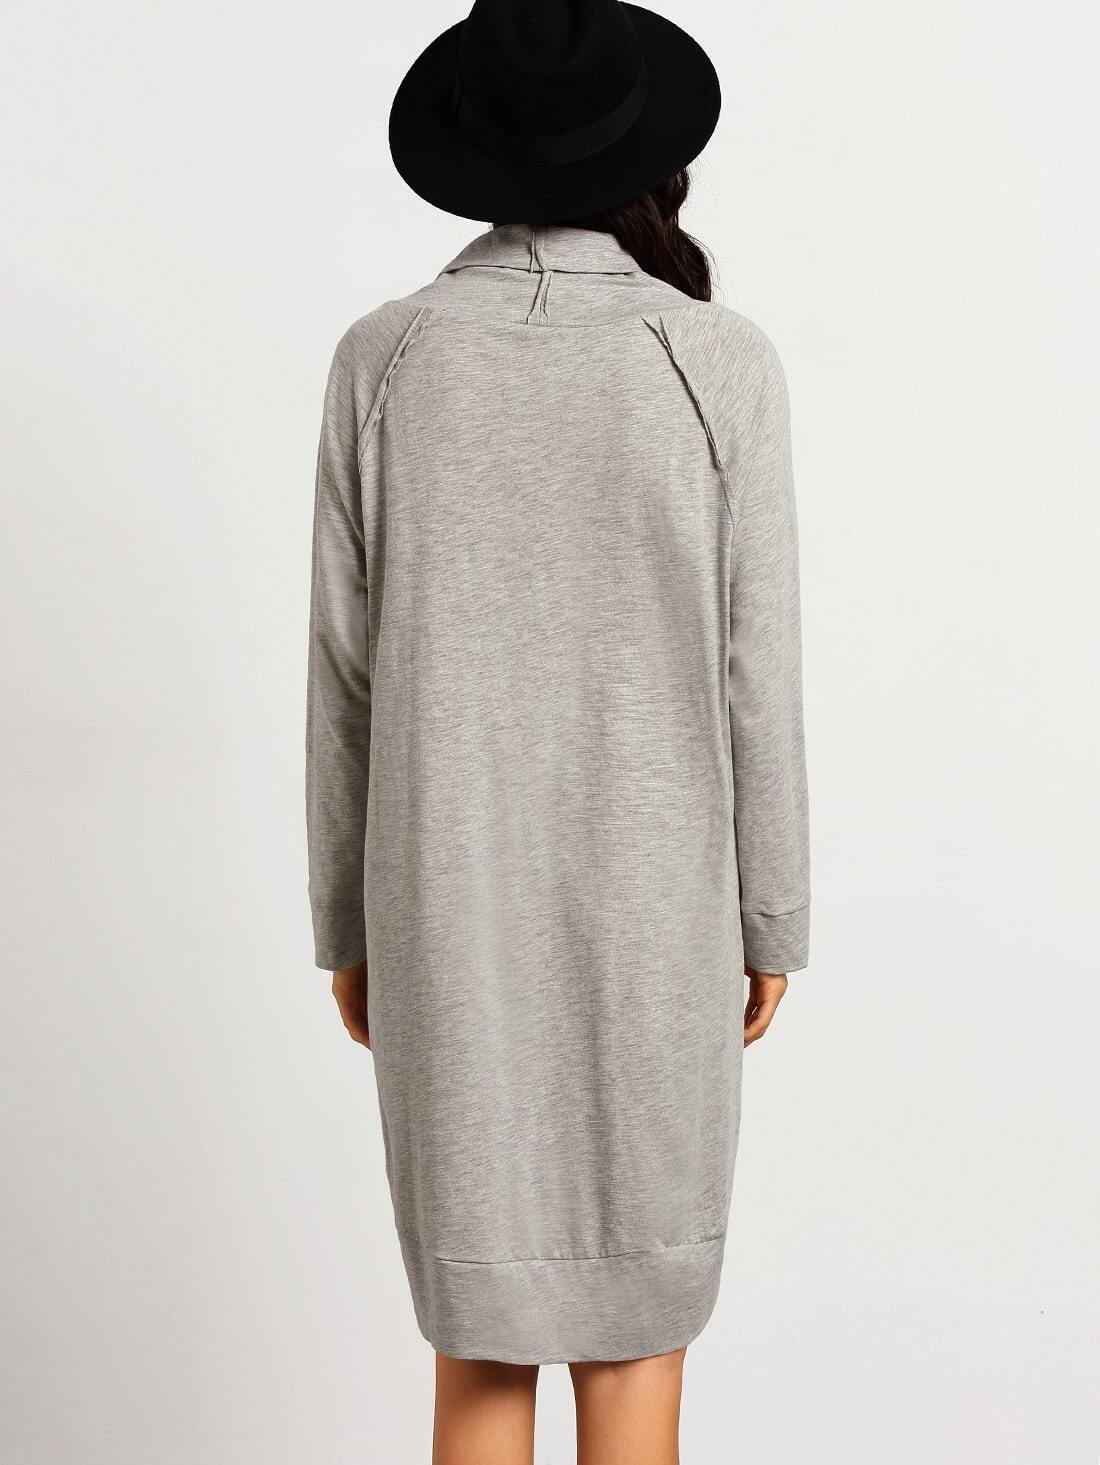 robe manches longues col roule gris french romwe With robe longue col roulé